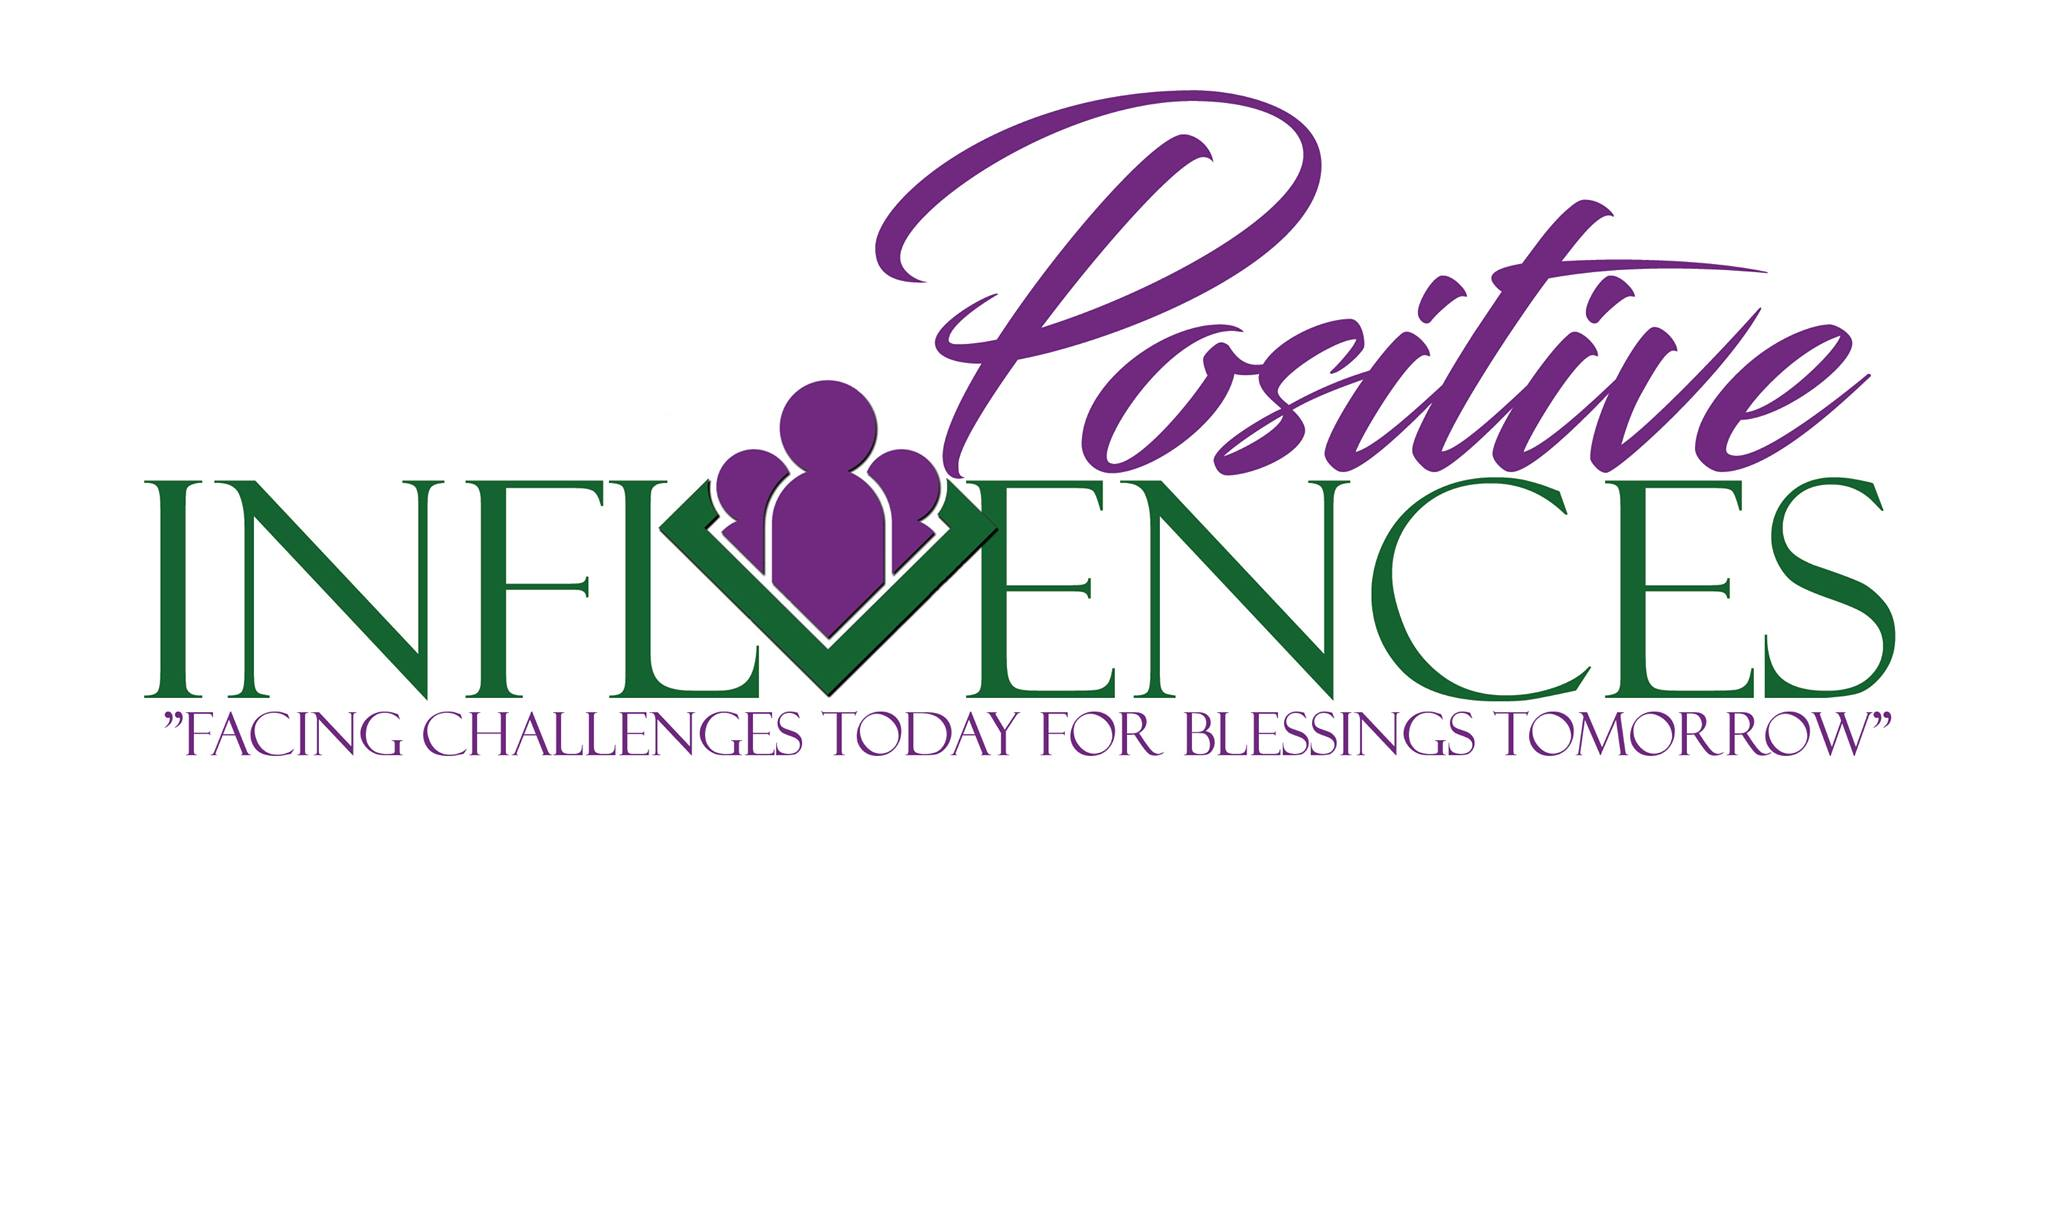 my positive influences Essay on the influence of my mother 503 words   3 pages it took a long time to value the exceptional influence my mother has been on my life she is the type of person who has thoughtful discussions about the importance of building a united family.